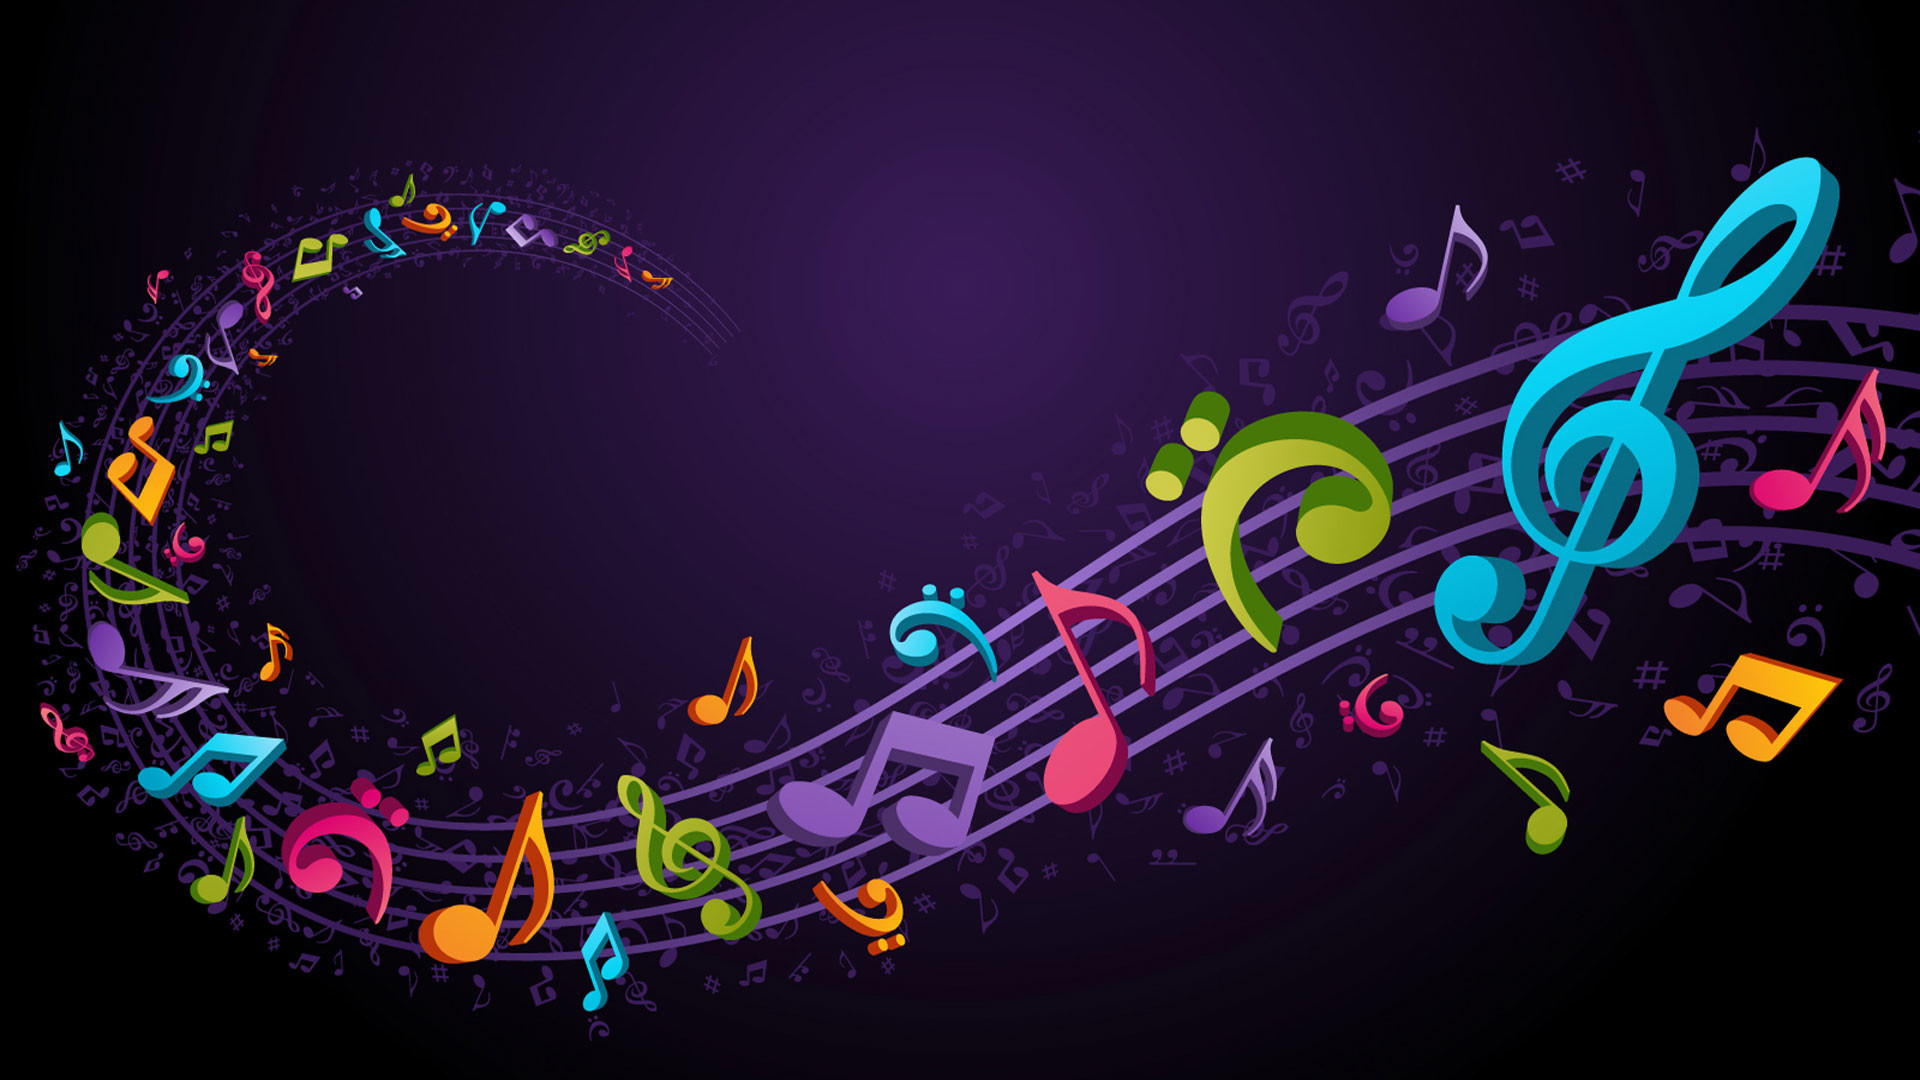 1920x1080 hd pics photos music abstract flying music notes colorful desktop  background wallpaper